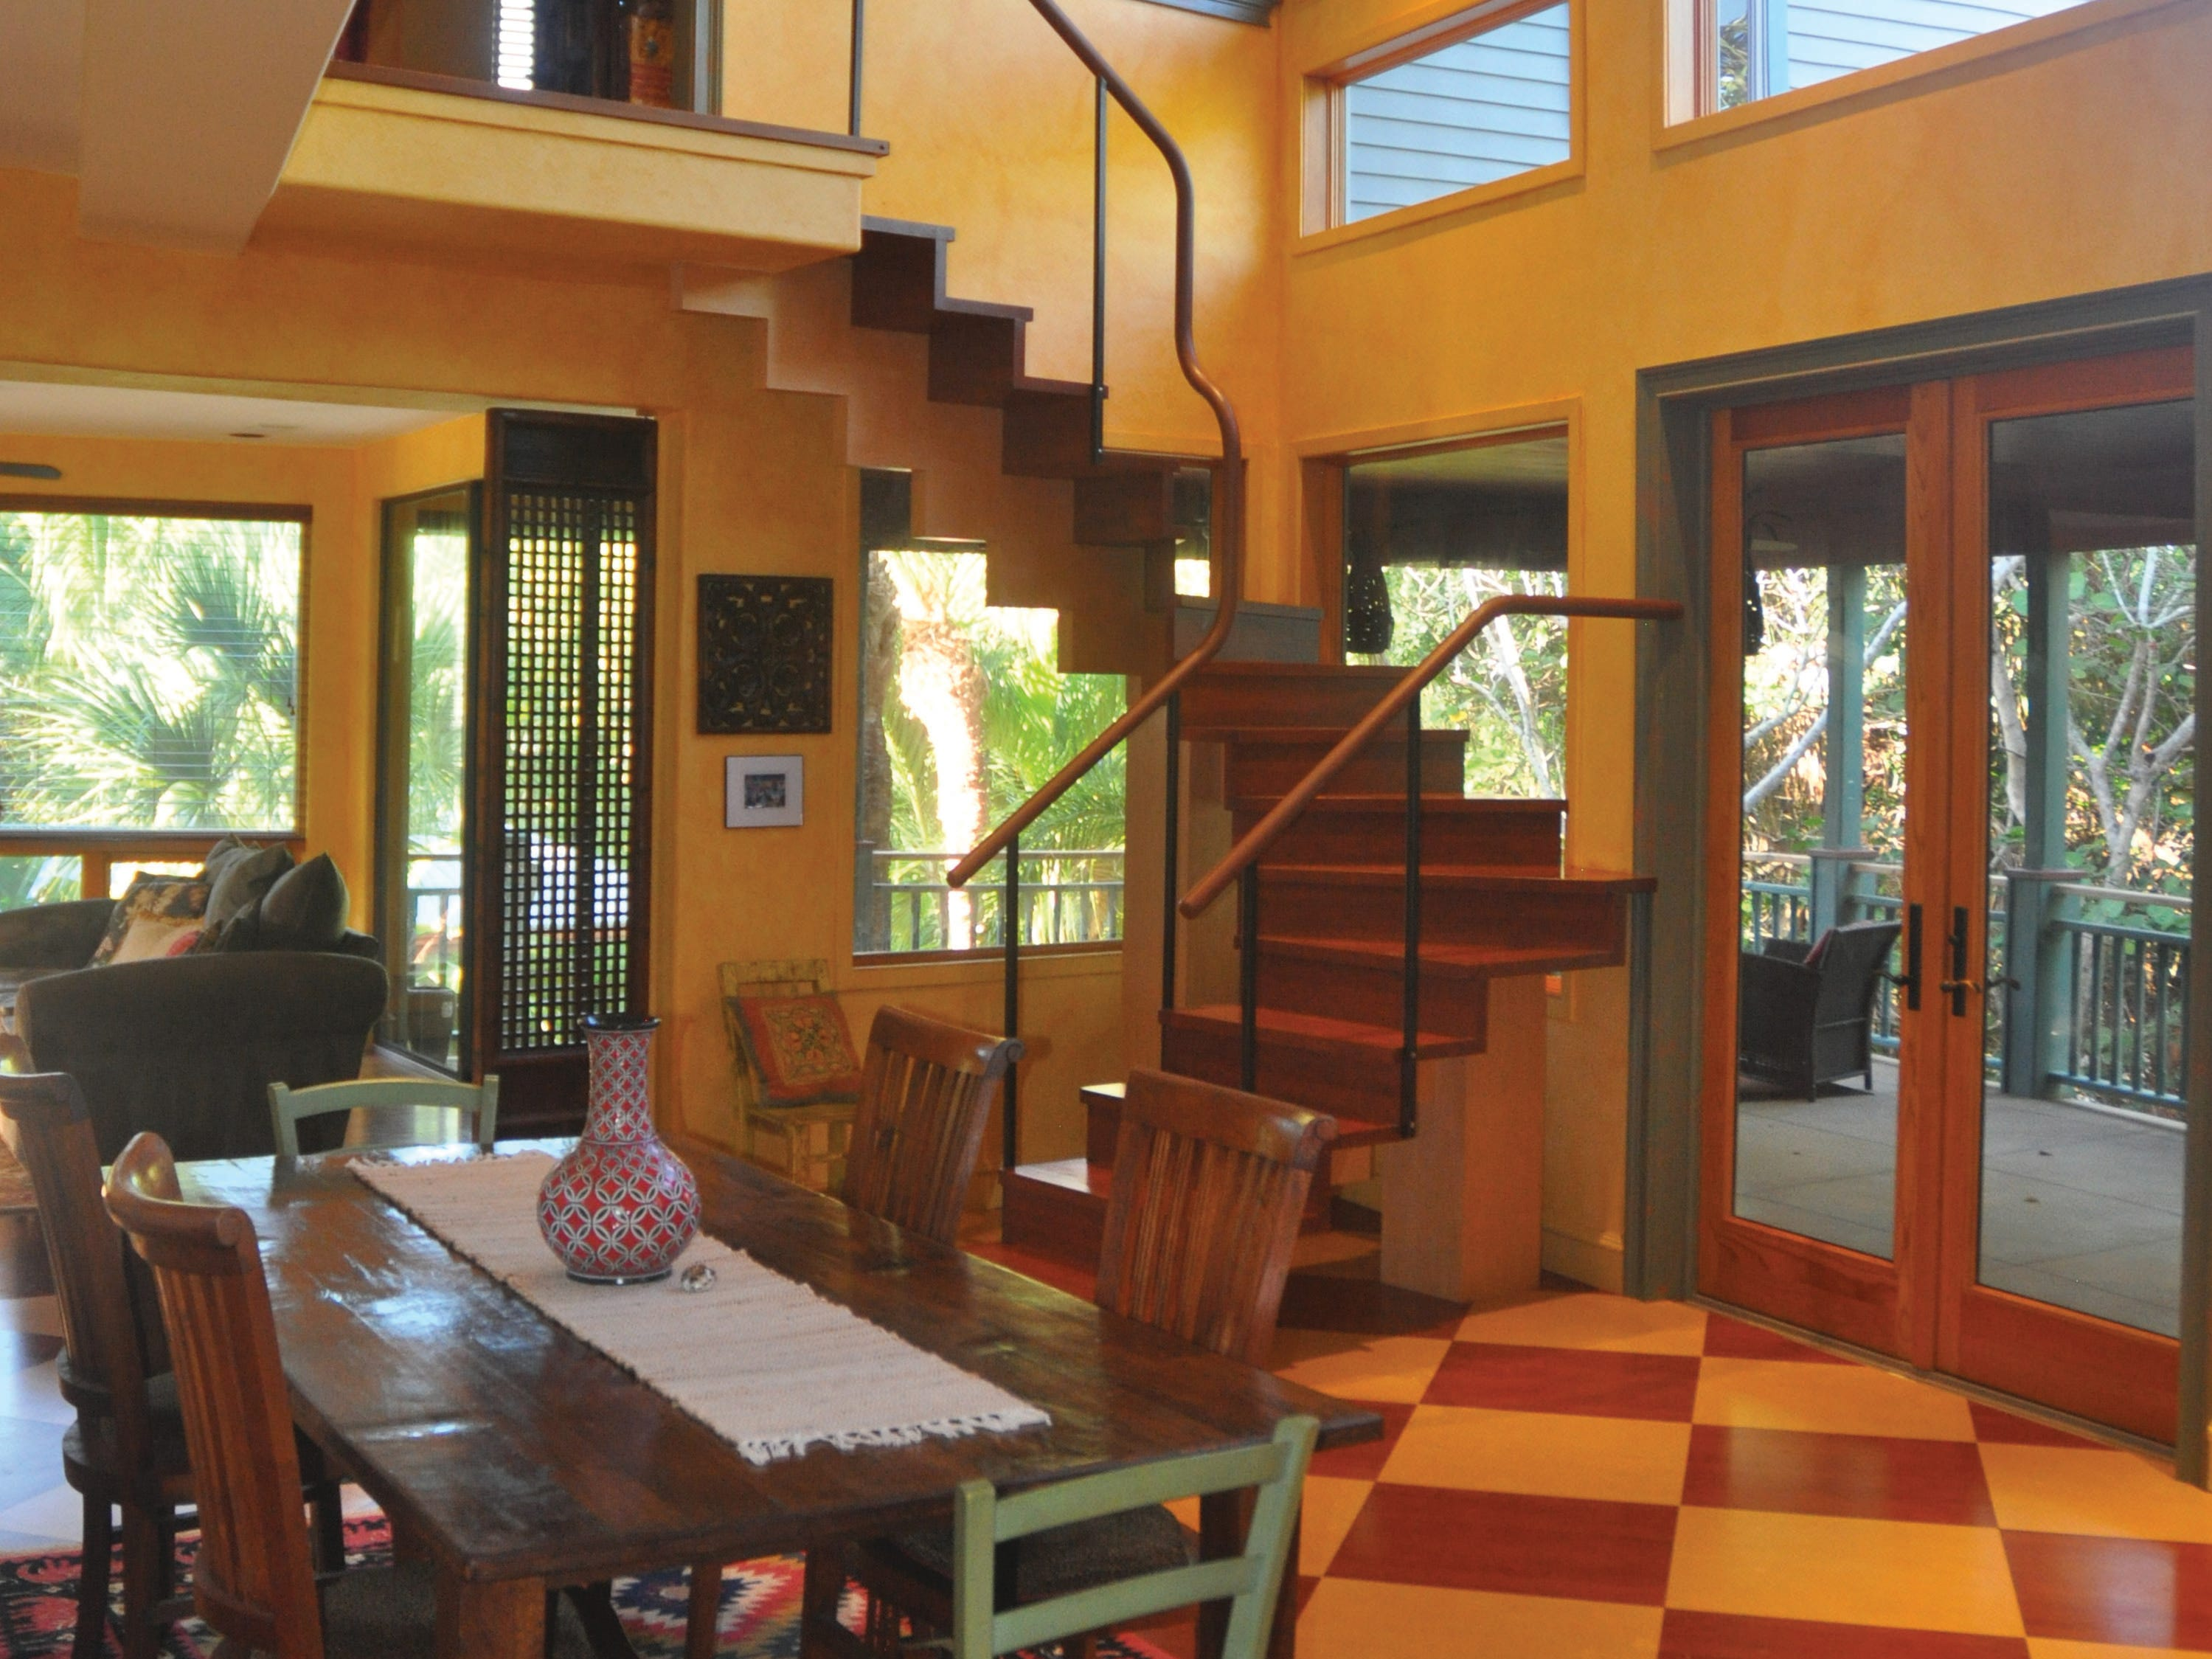 This secluded quirky home on Sanibel Island could be yours